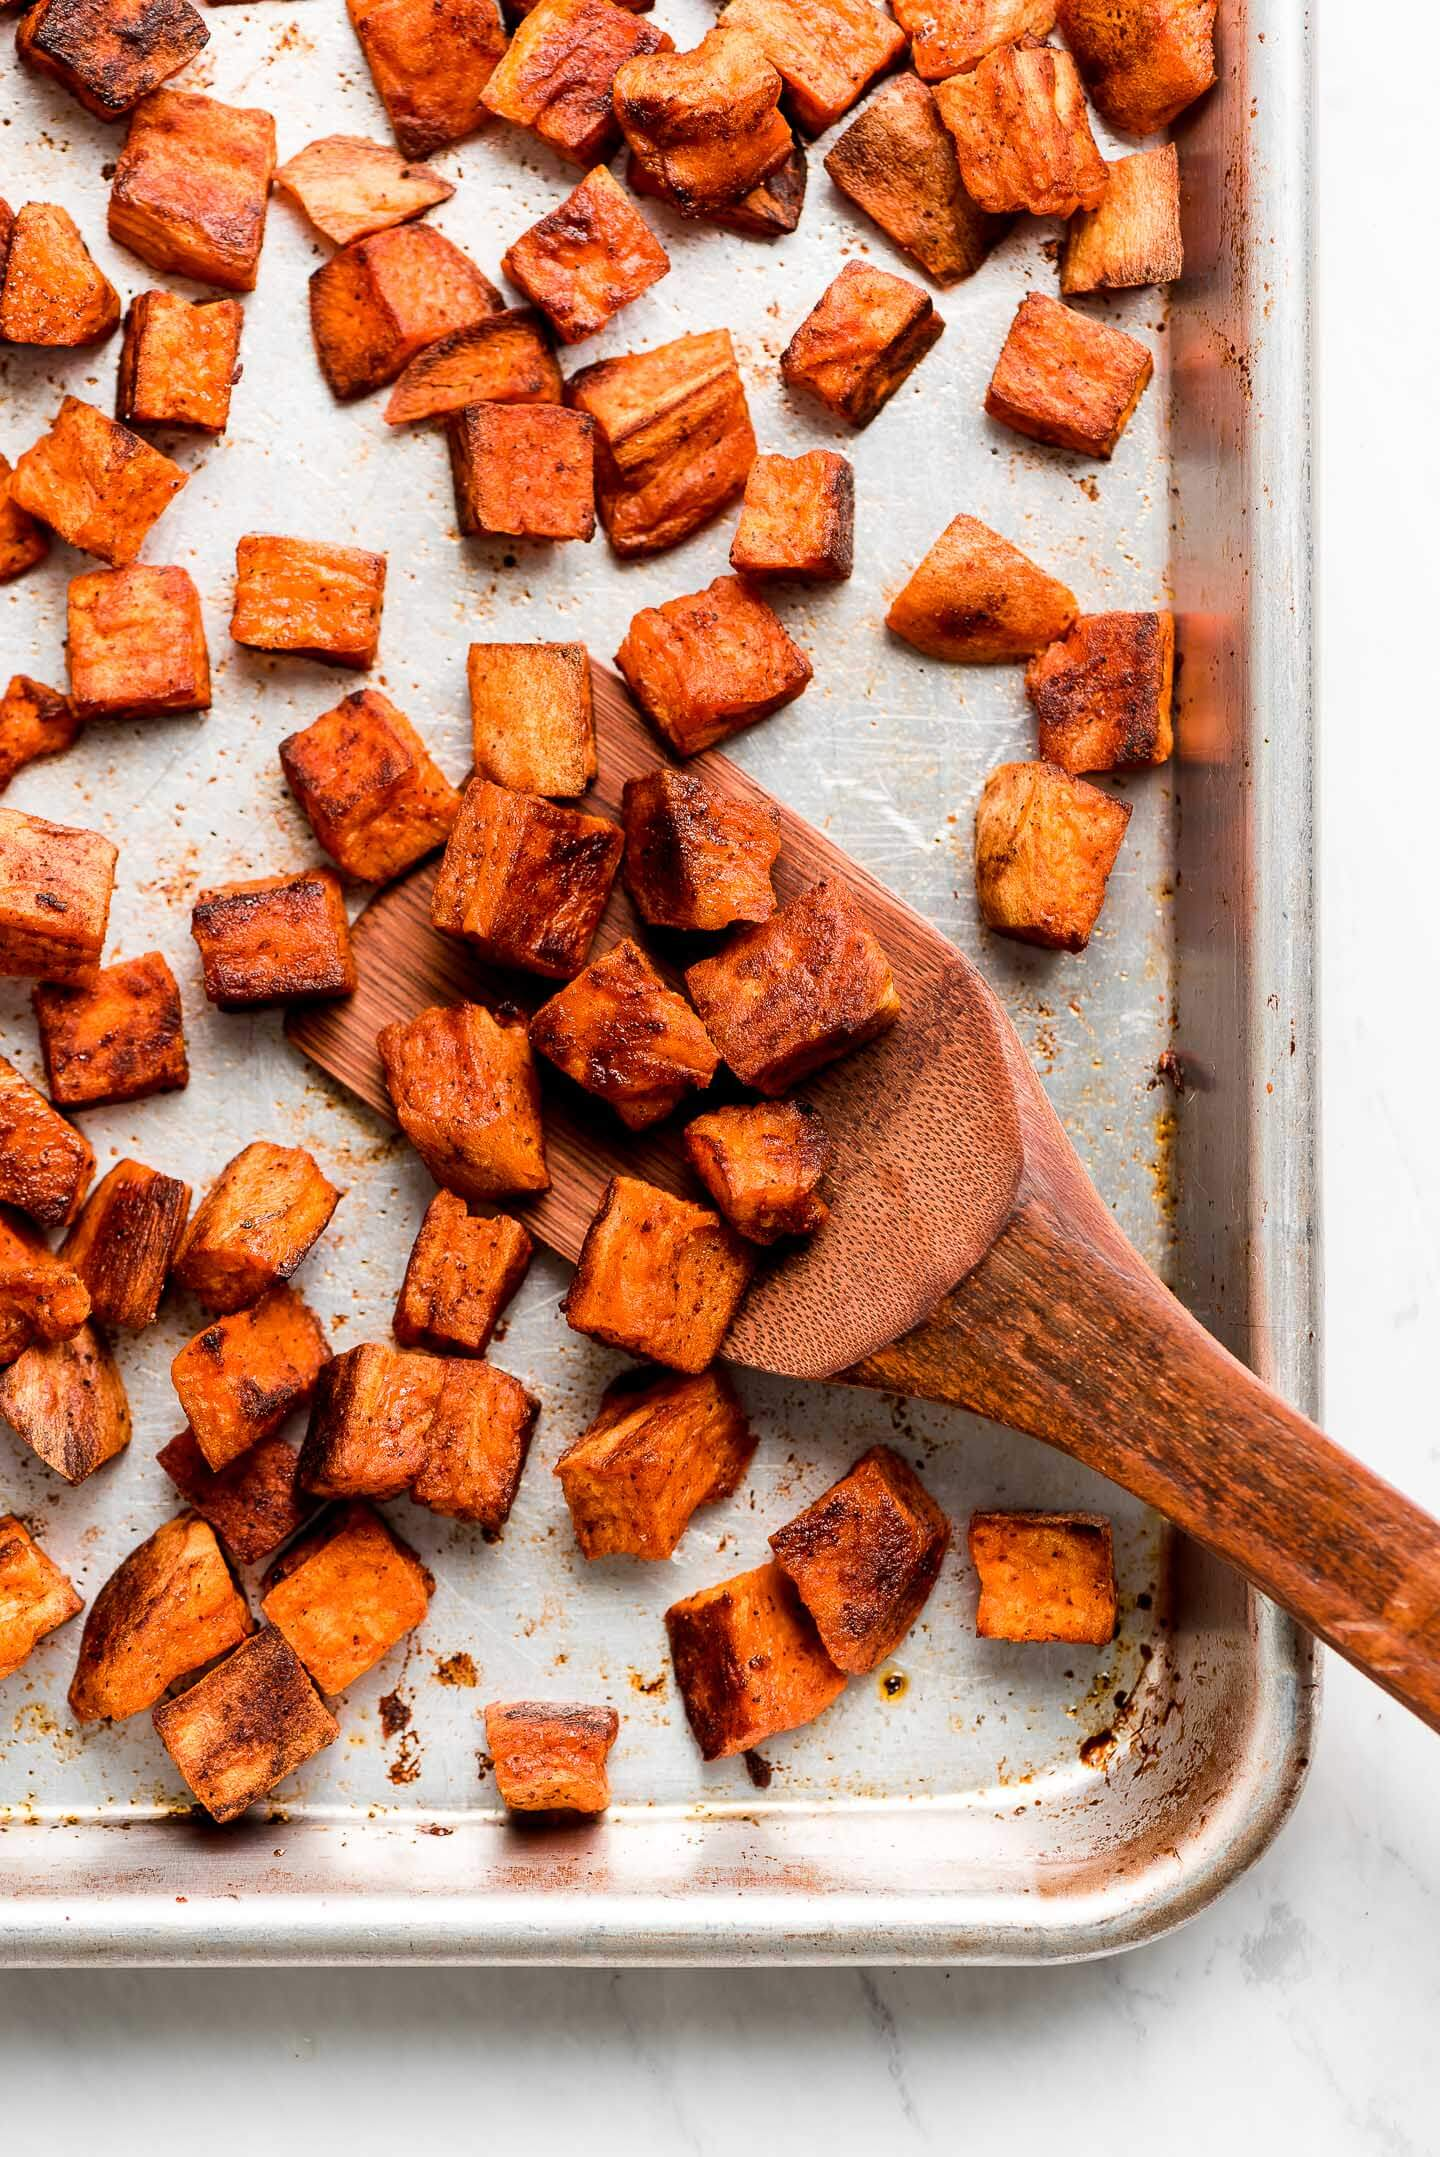 Roasted Sweet Potatoes Garnish Glaze